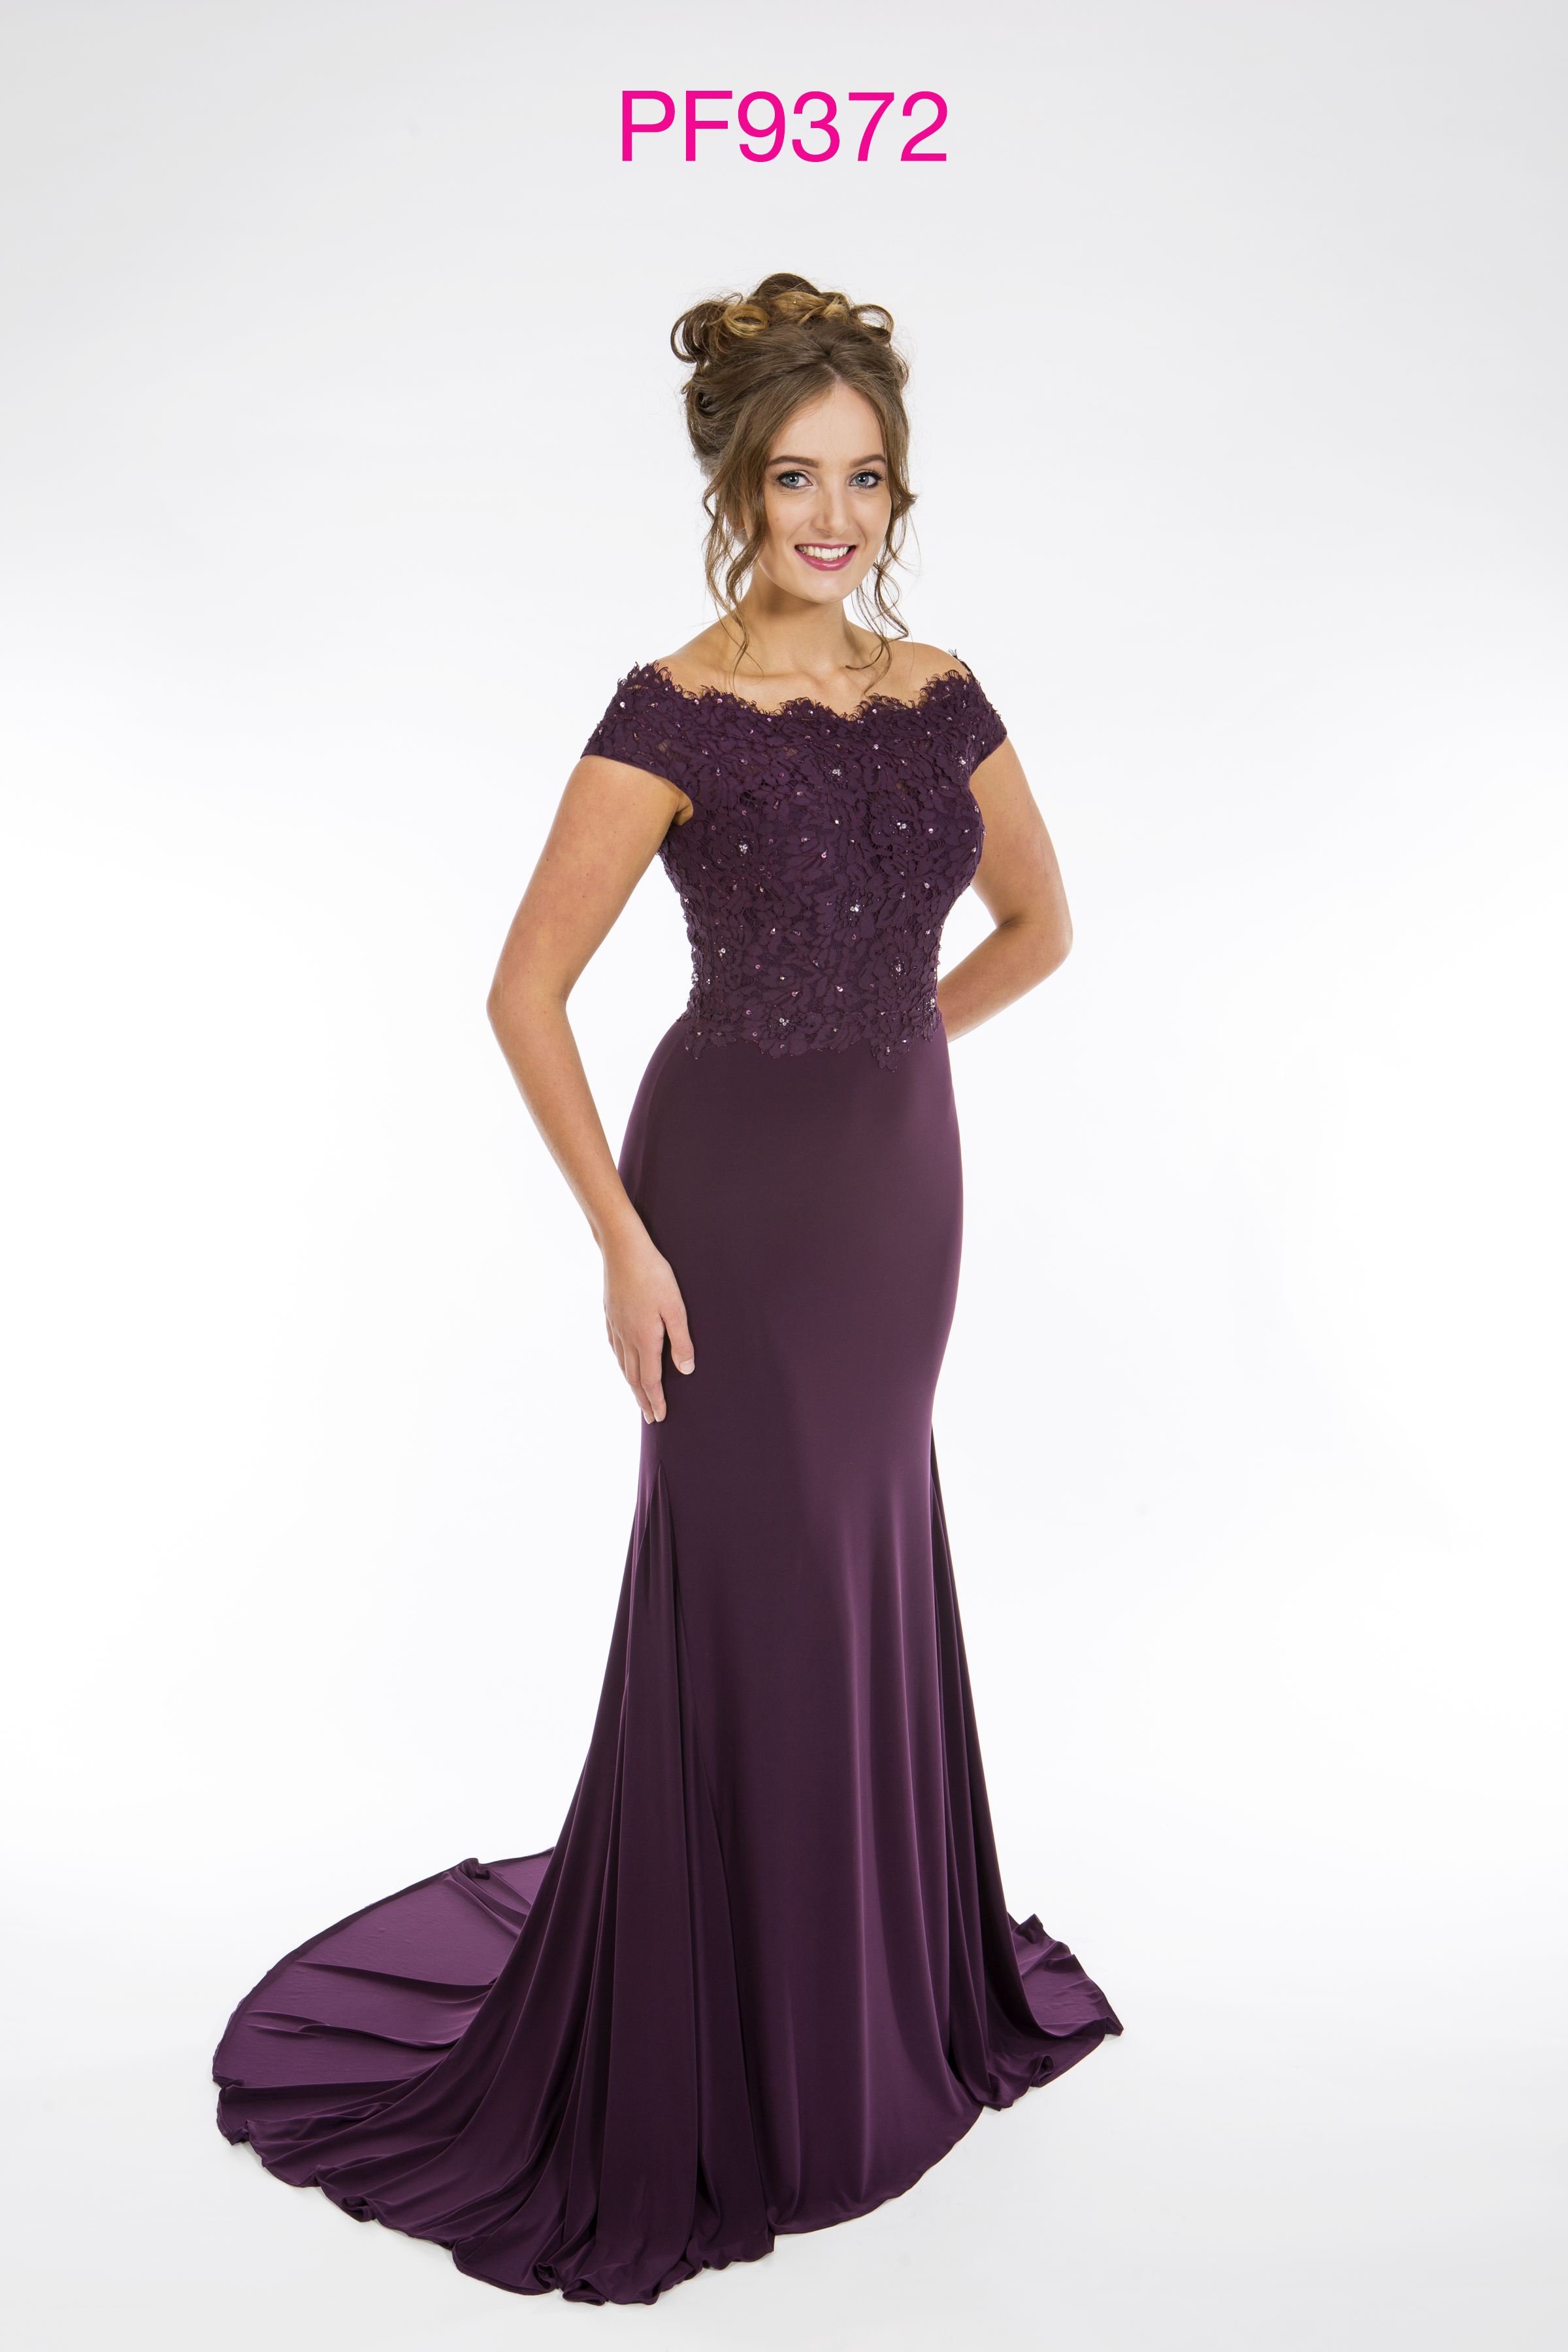 Prom Frocks PF9372 Dark Purple Prom Dress - Prom Frocks UK ...